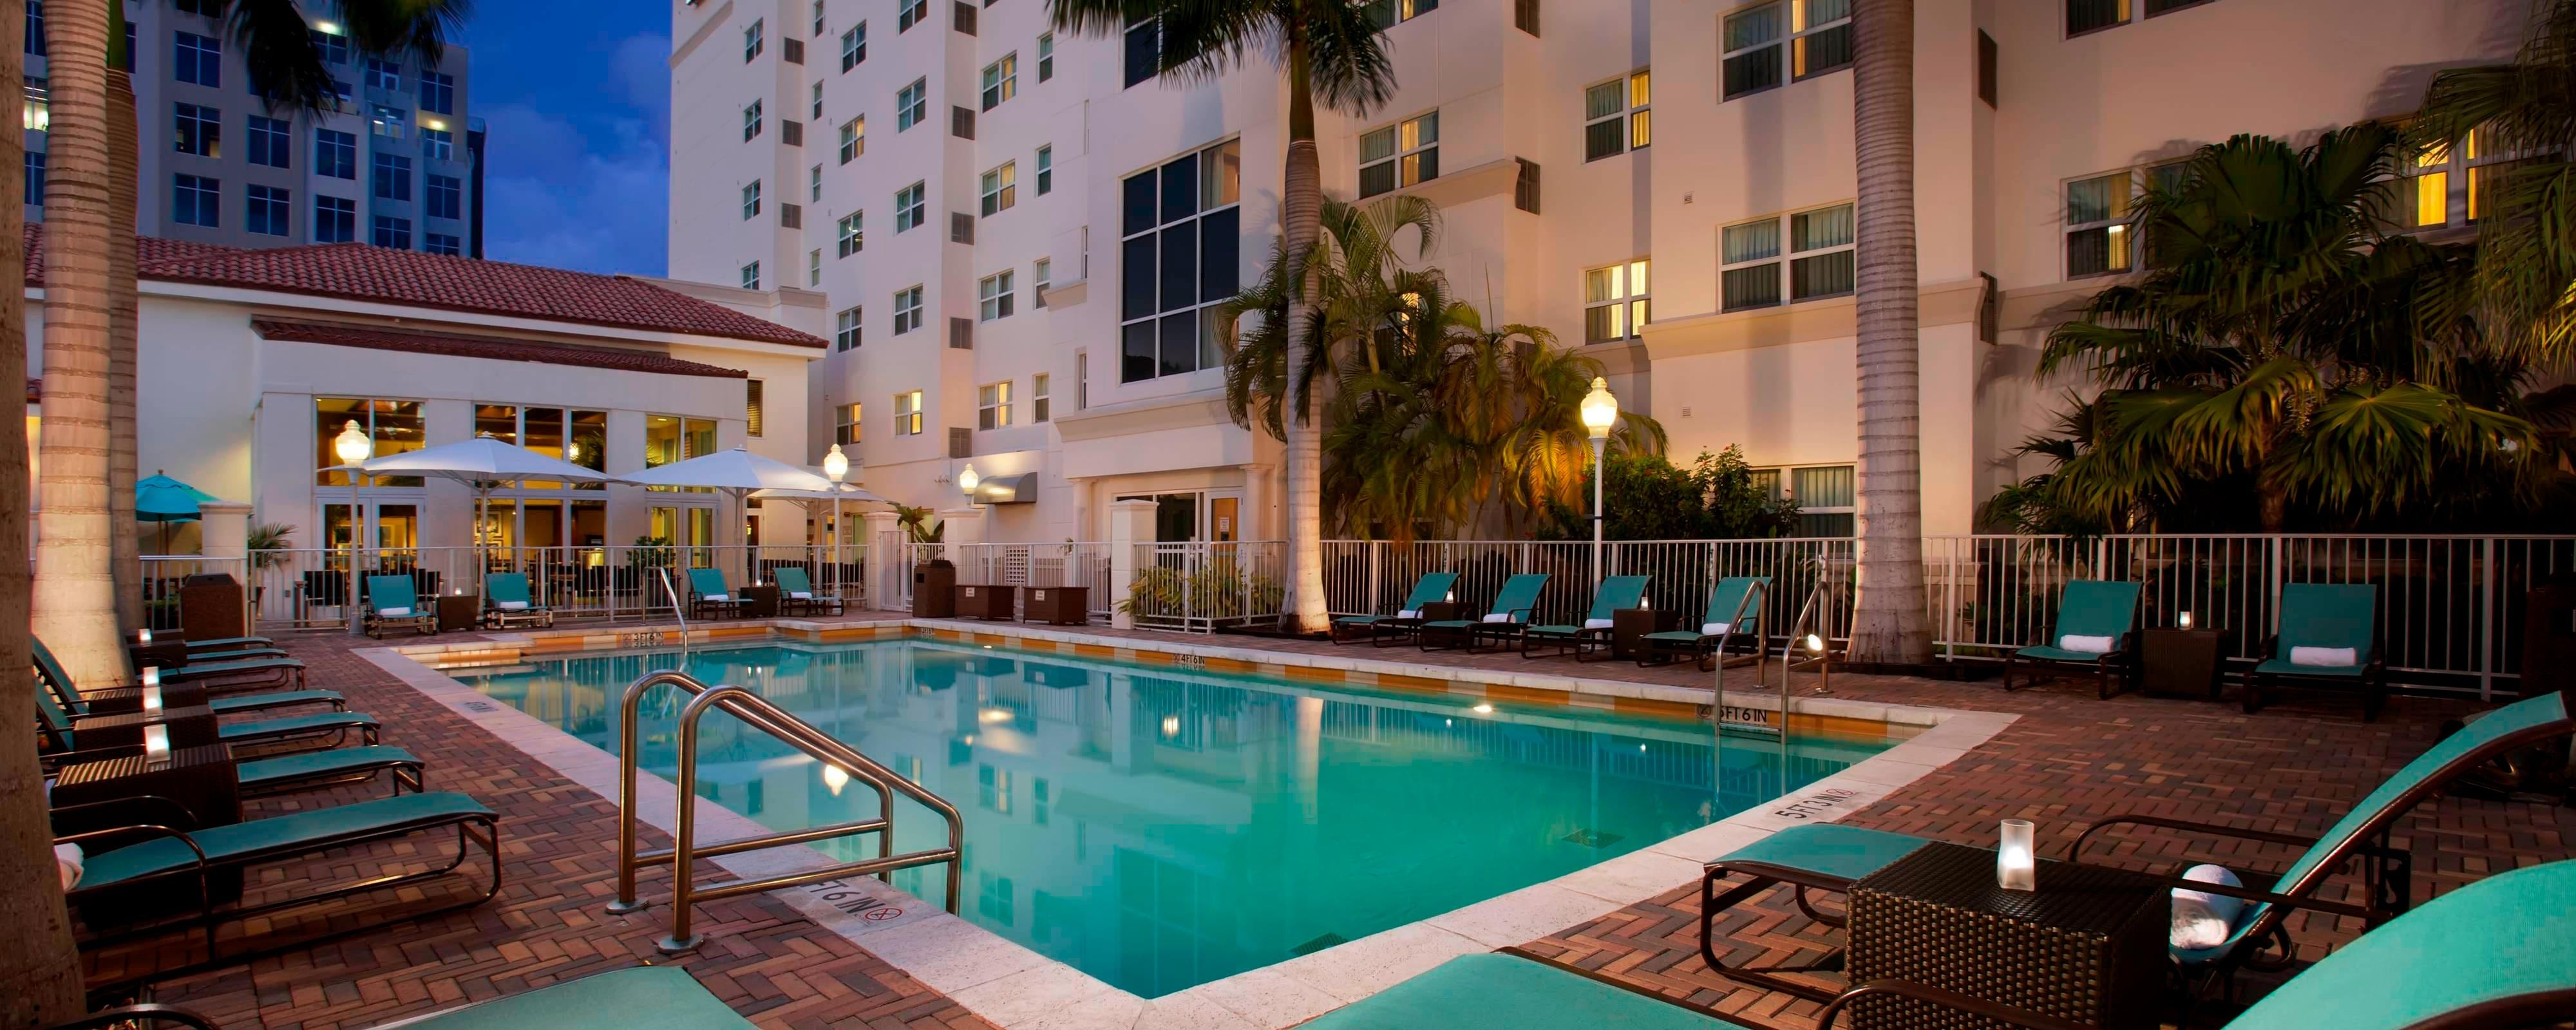 hotels in miami with kitchen cabinets louisville aventura extended stay residence inn mall hotel outdoor pool